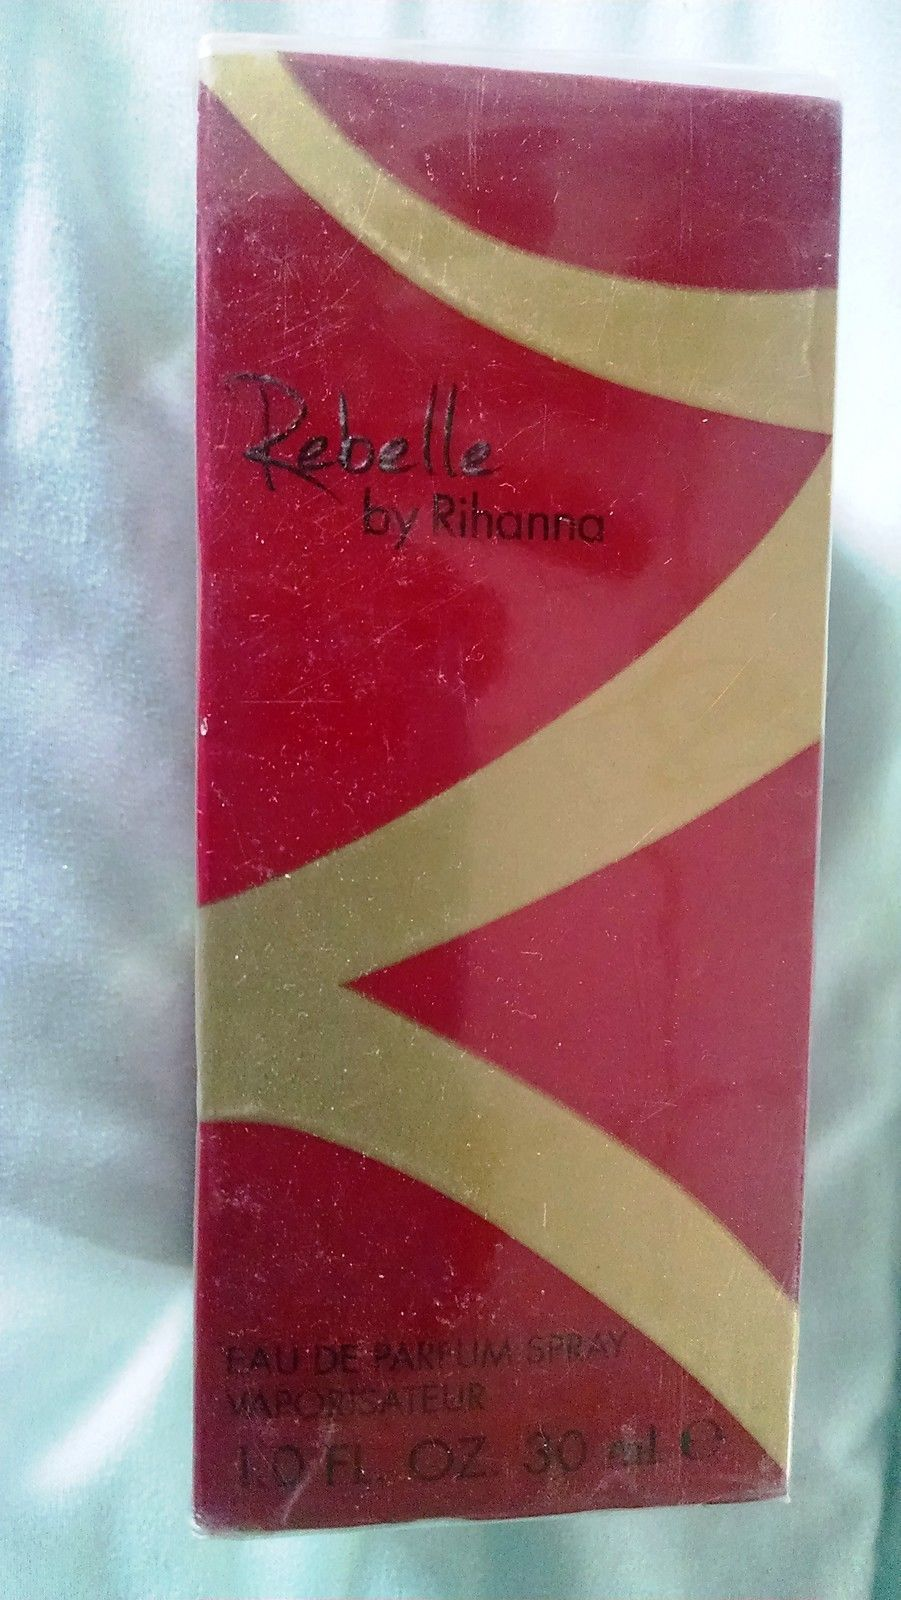 Rebelle by Rihanna Eau De Parfum Spray Vaporisateur 1.0 oz  - New / Sealed